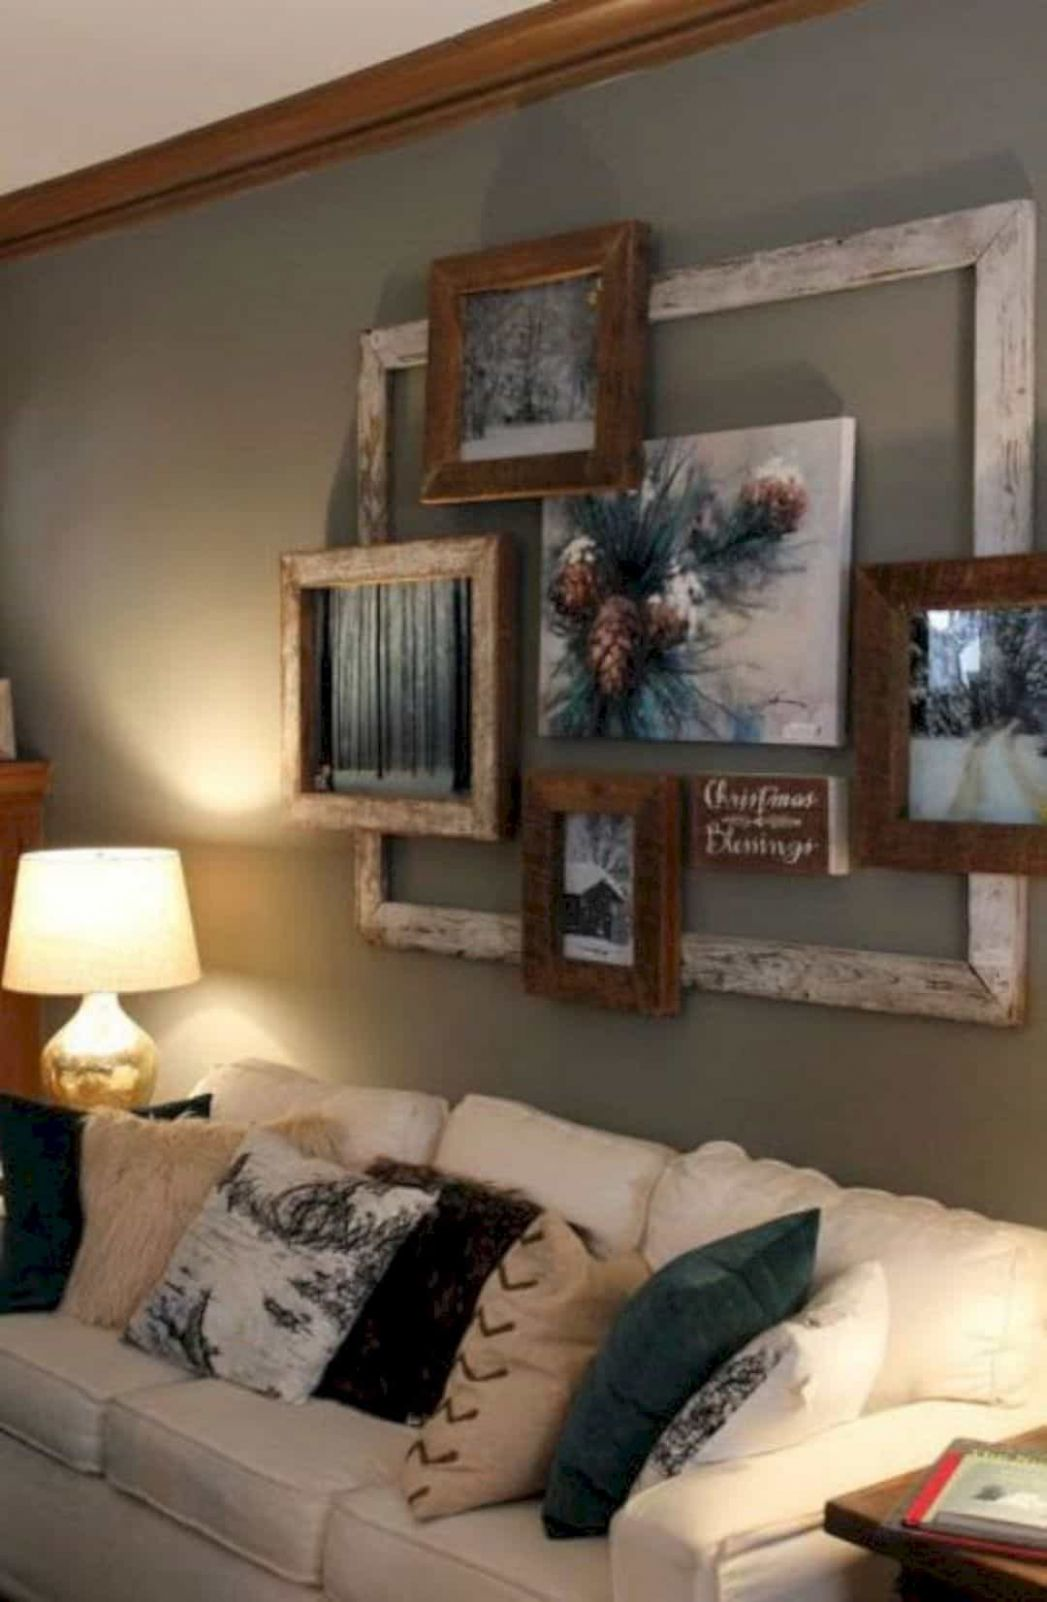 12 DIY Rustic Home Decor Ideas for Living Room - diy home decor room